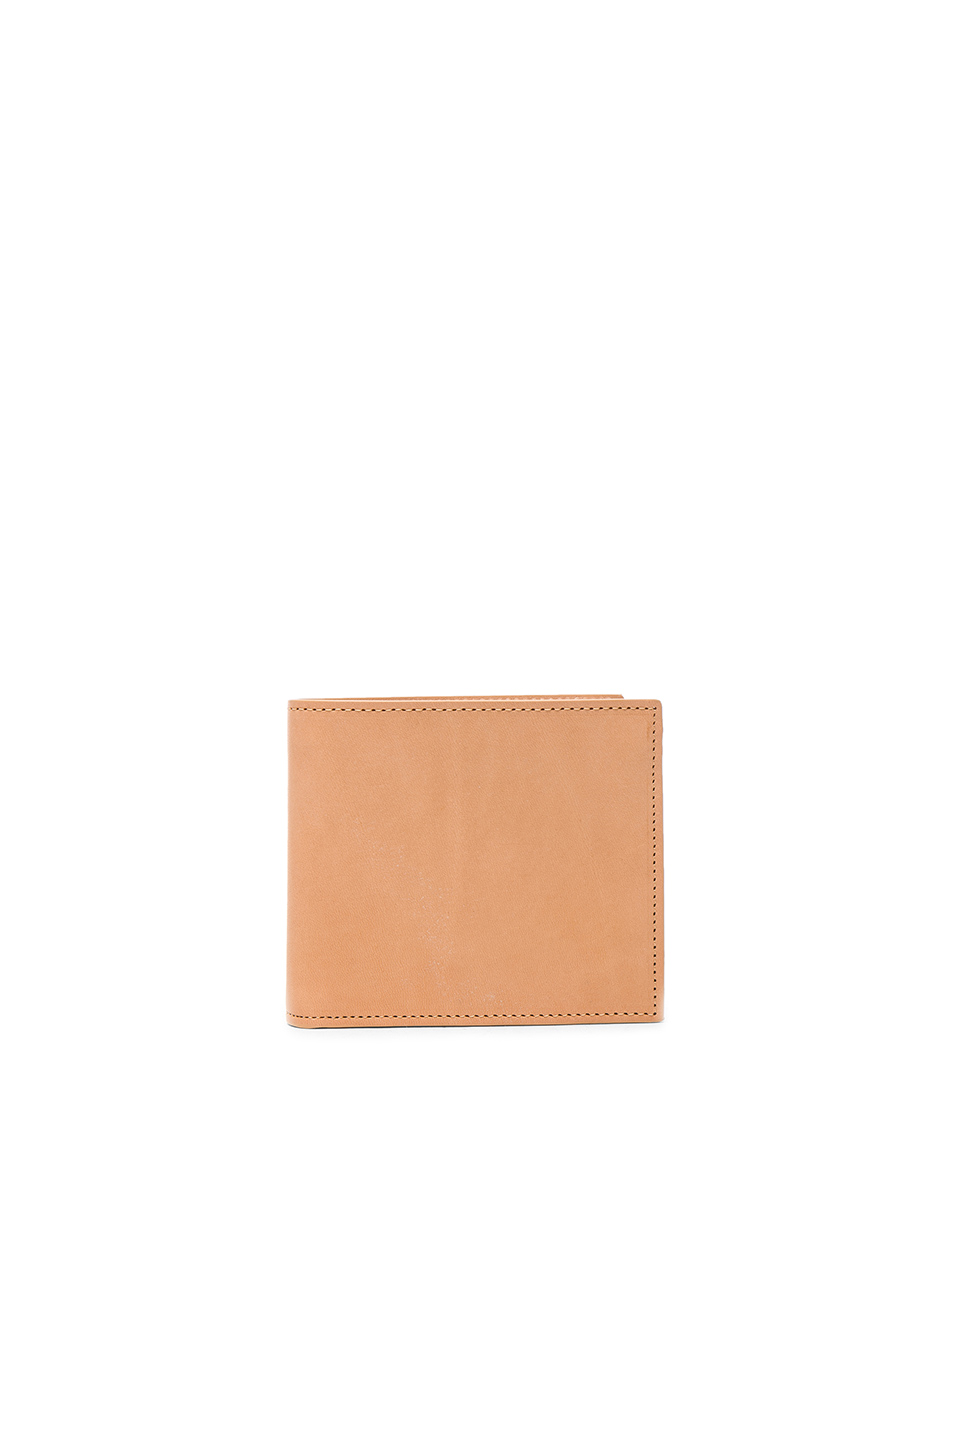 Maison Margiela Leather Flap Wallet in Neutrals